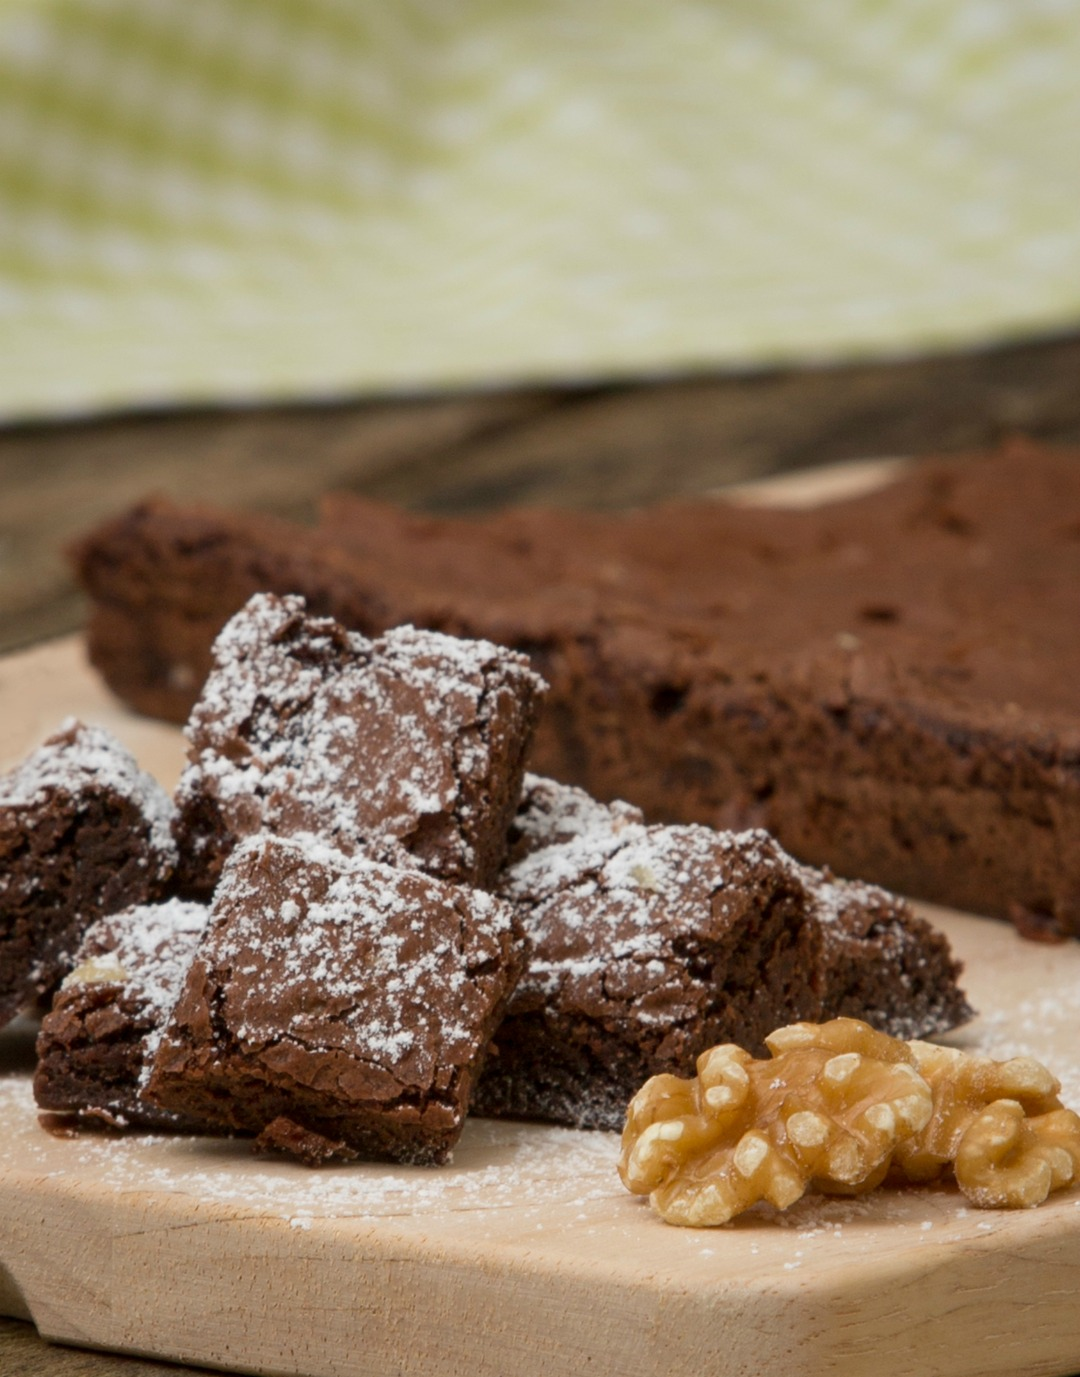 Easiest chocolate brownie recipe ever - perfect for you and the kids to do together. Just look at it! #recipes #brownies #chocolate